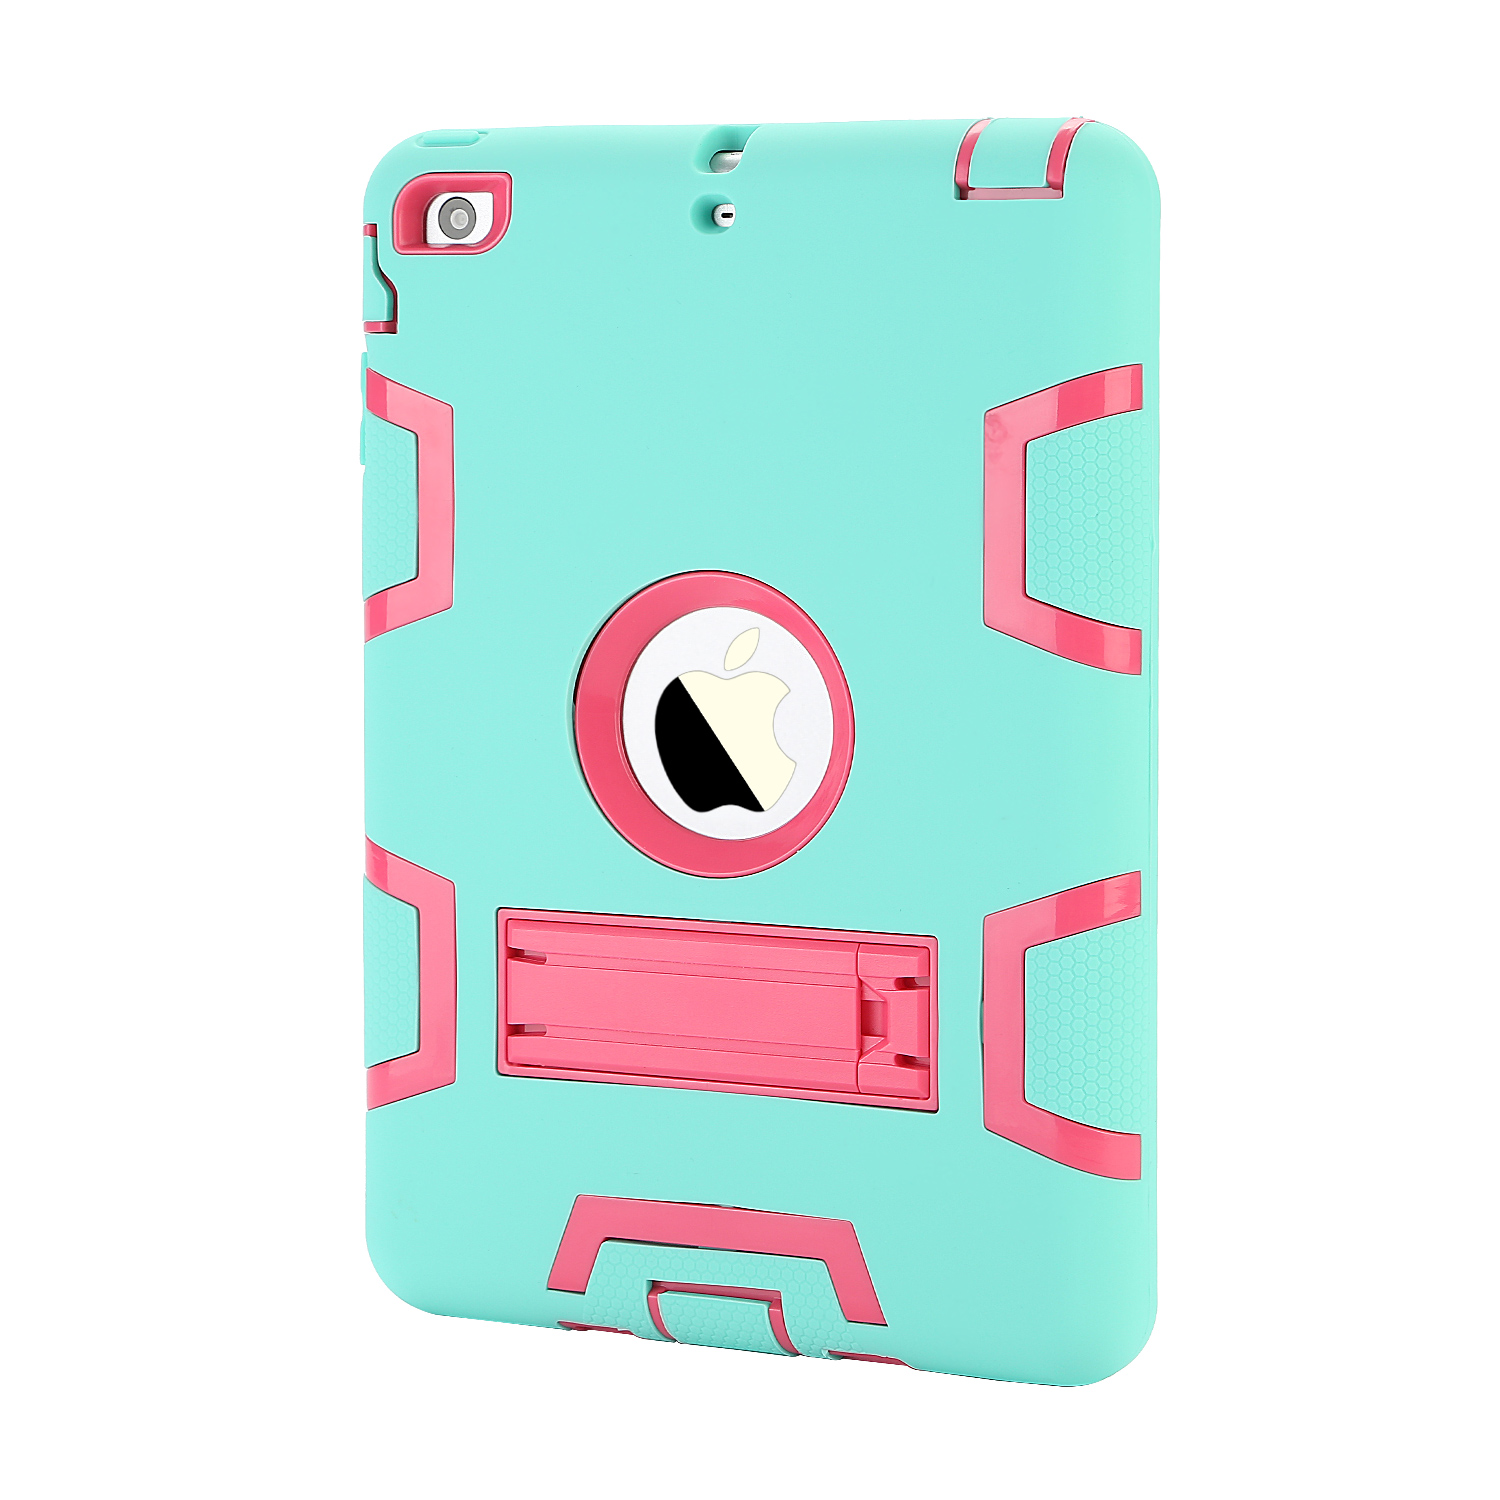 TKOOFN IPad mini Kids heavy duty Shockproof stand ubber Tough case cover for Apple iPad mini 123